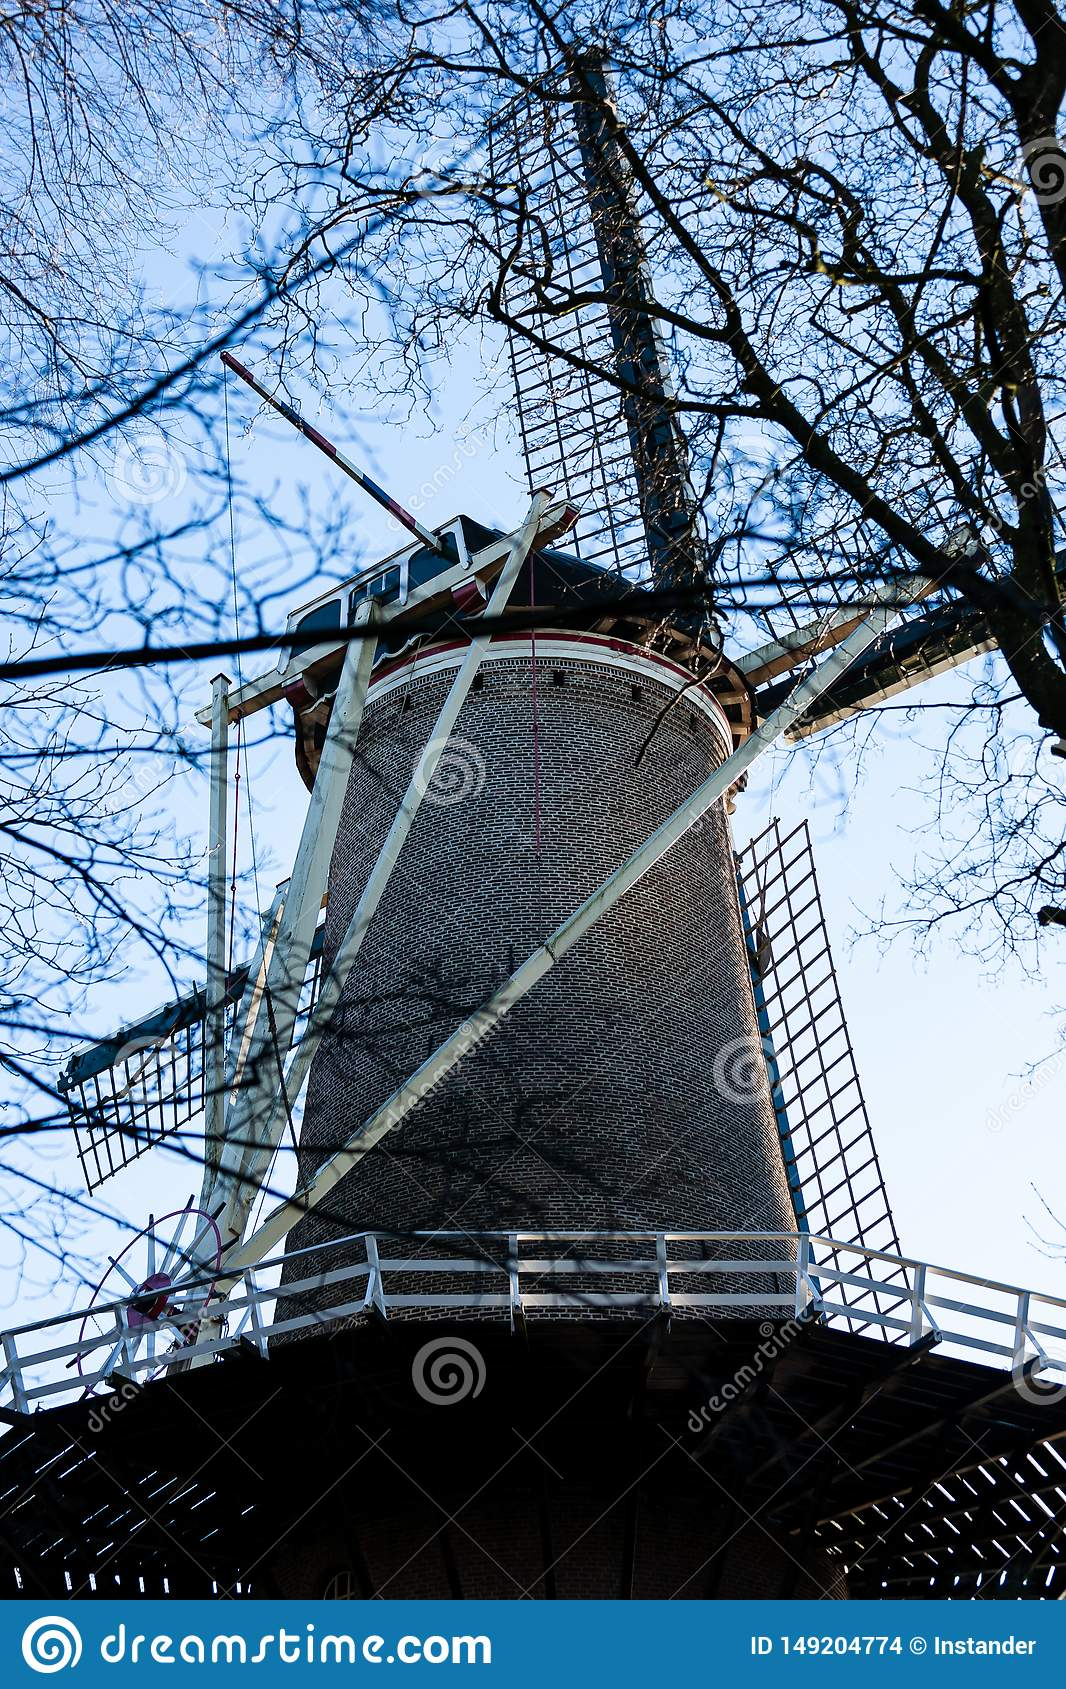 Gouda, South Holland/the Netherlands - January 20 2019: Picture of old windmill next to city park taken through tree branches